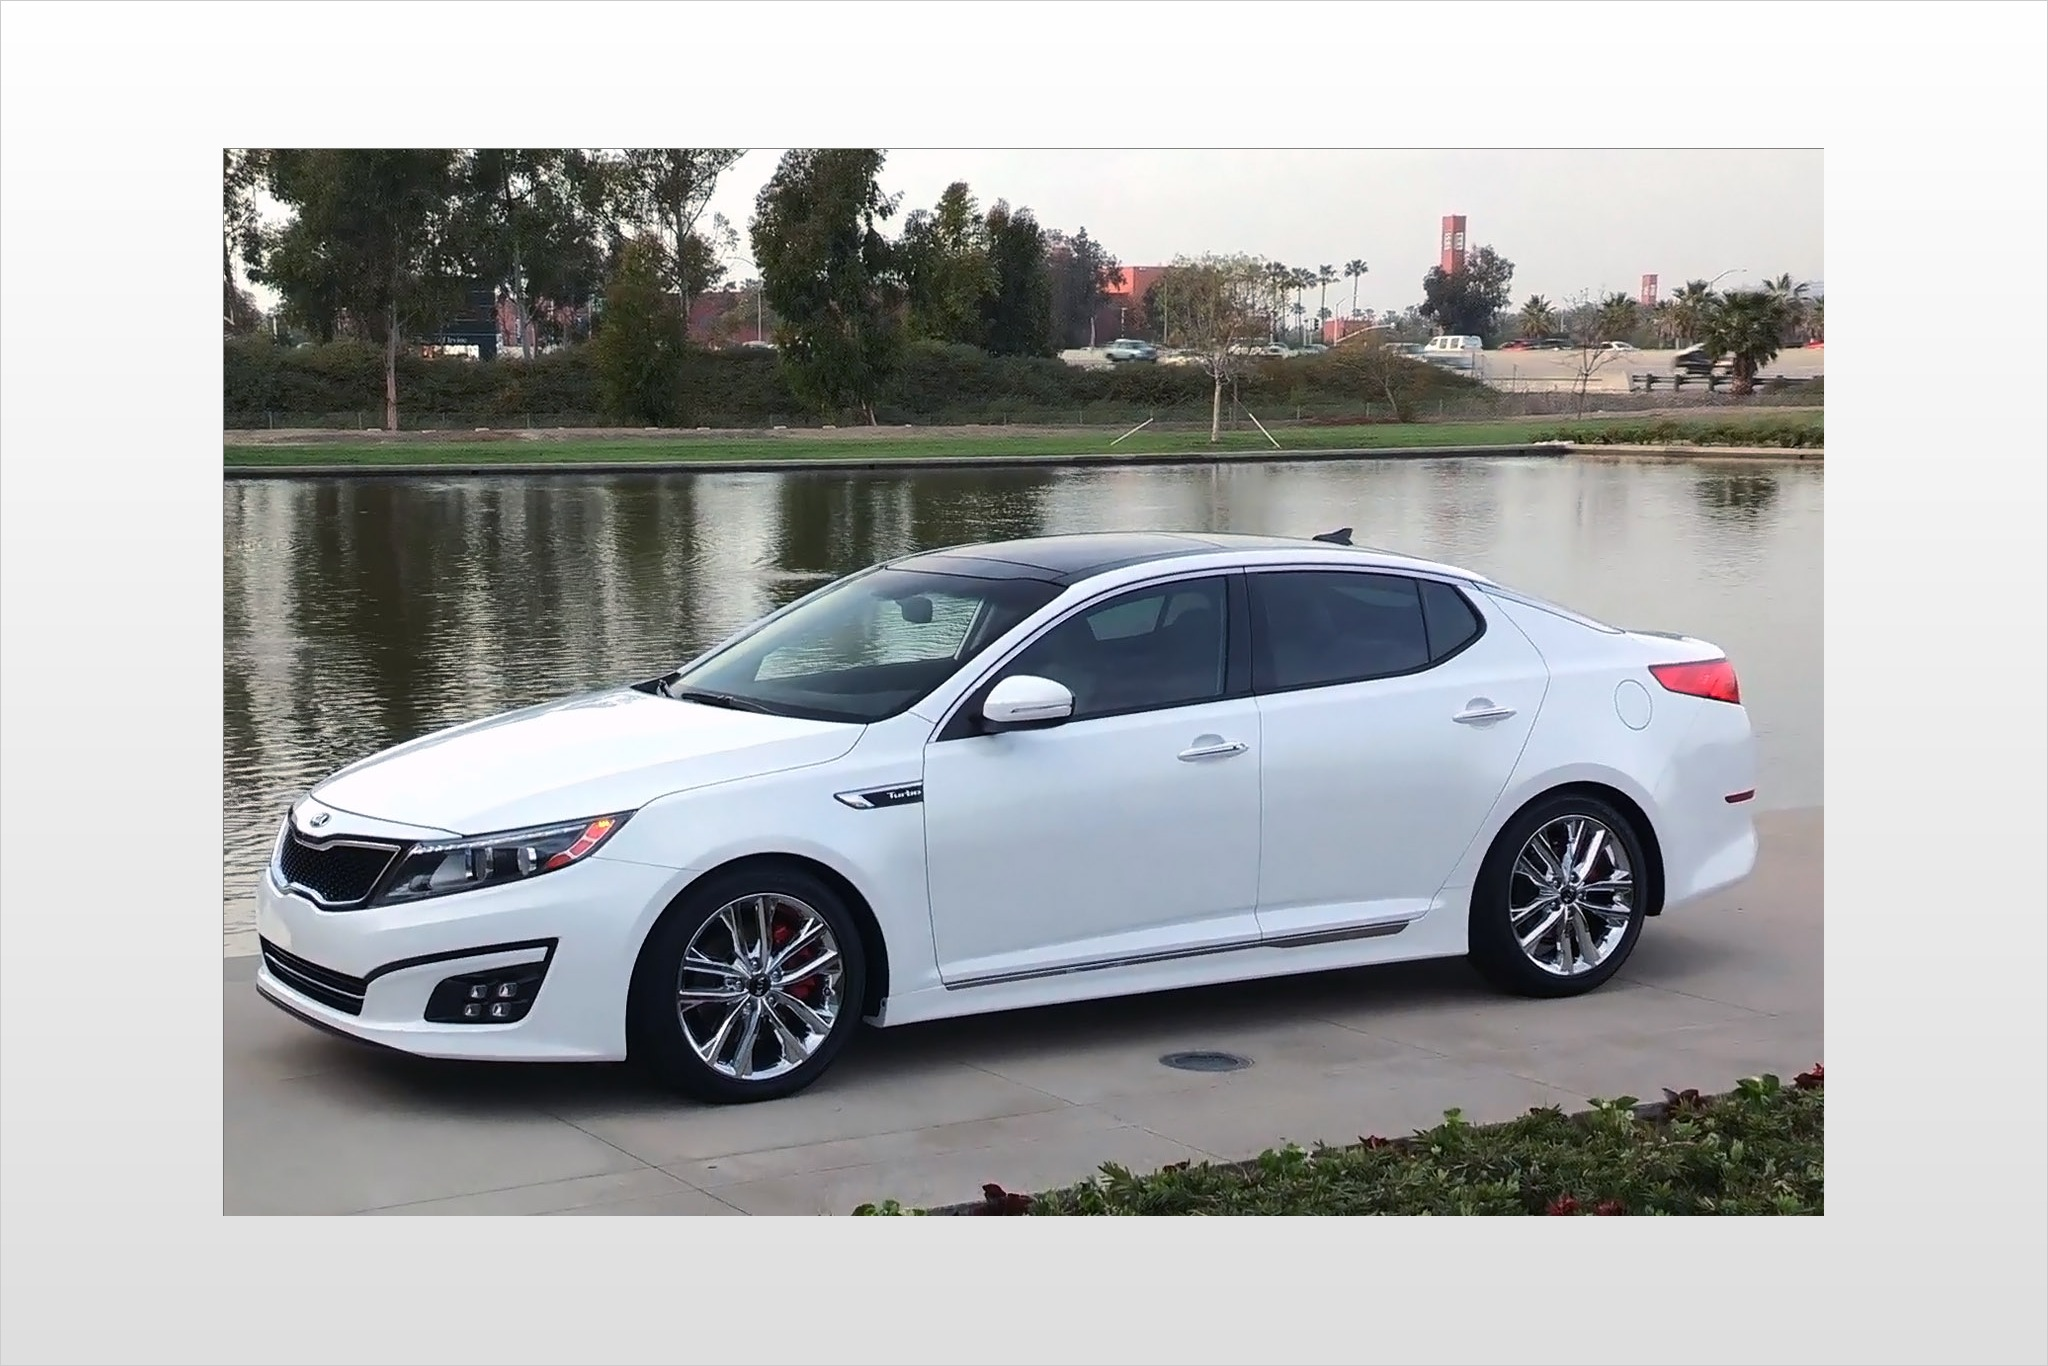 Limited Sedan >> 2014 KIA OPTIMA - Image #4